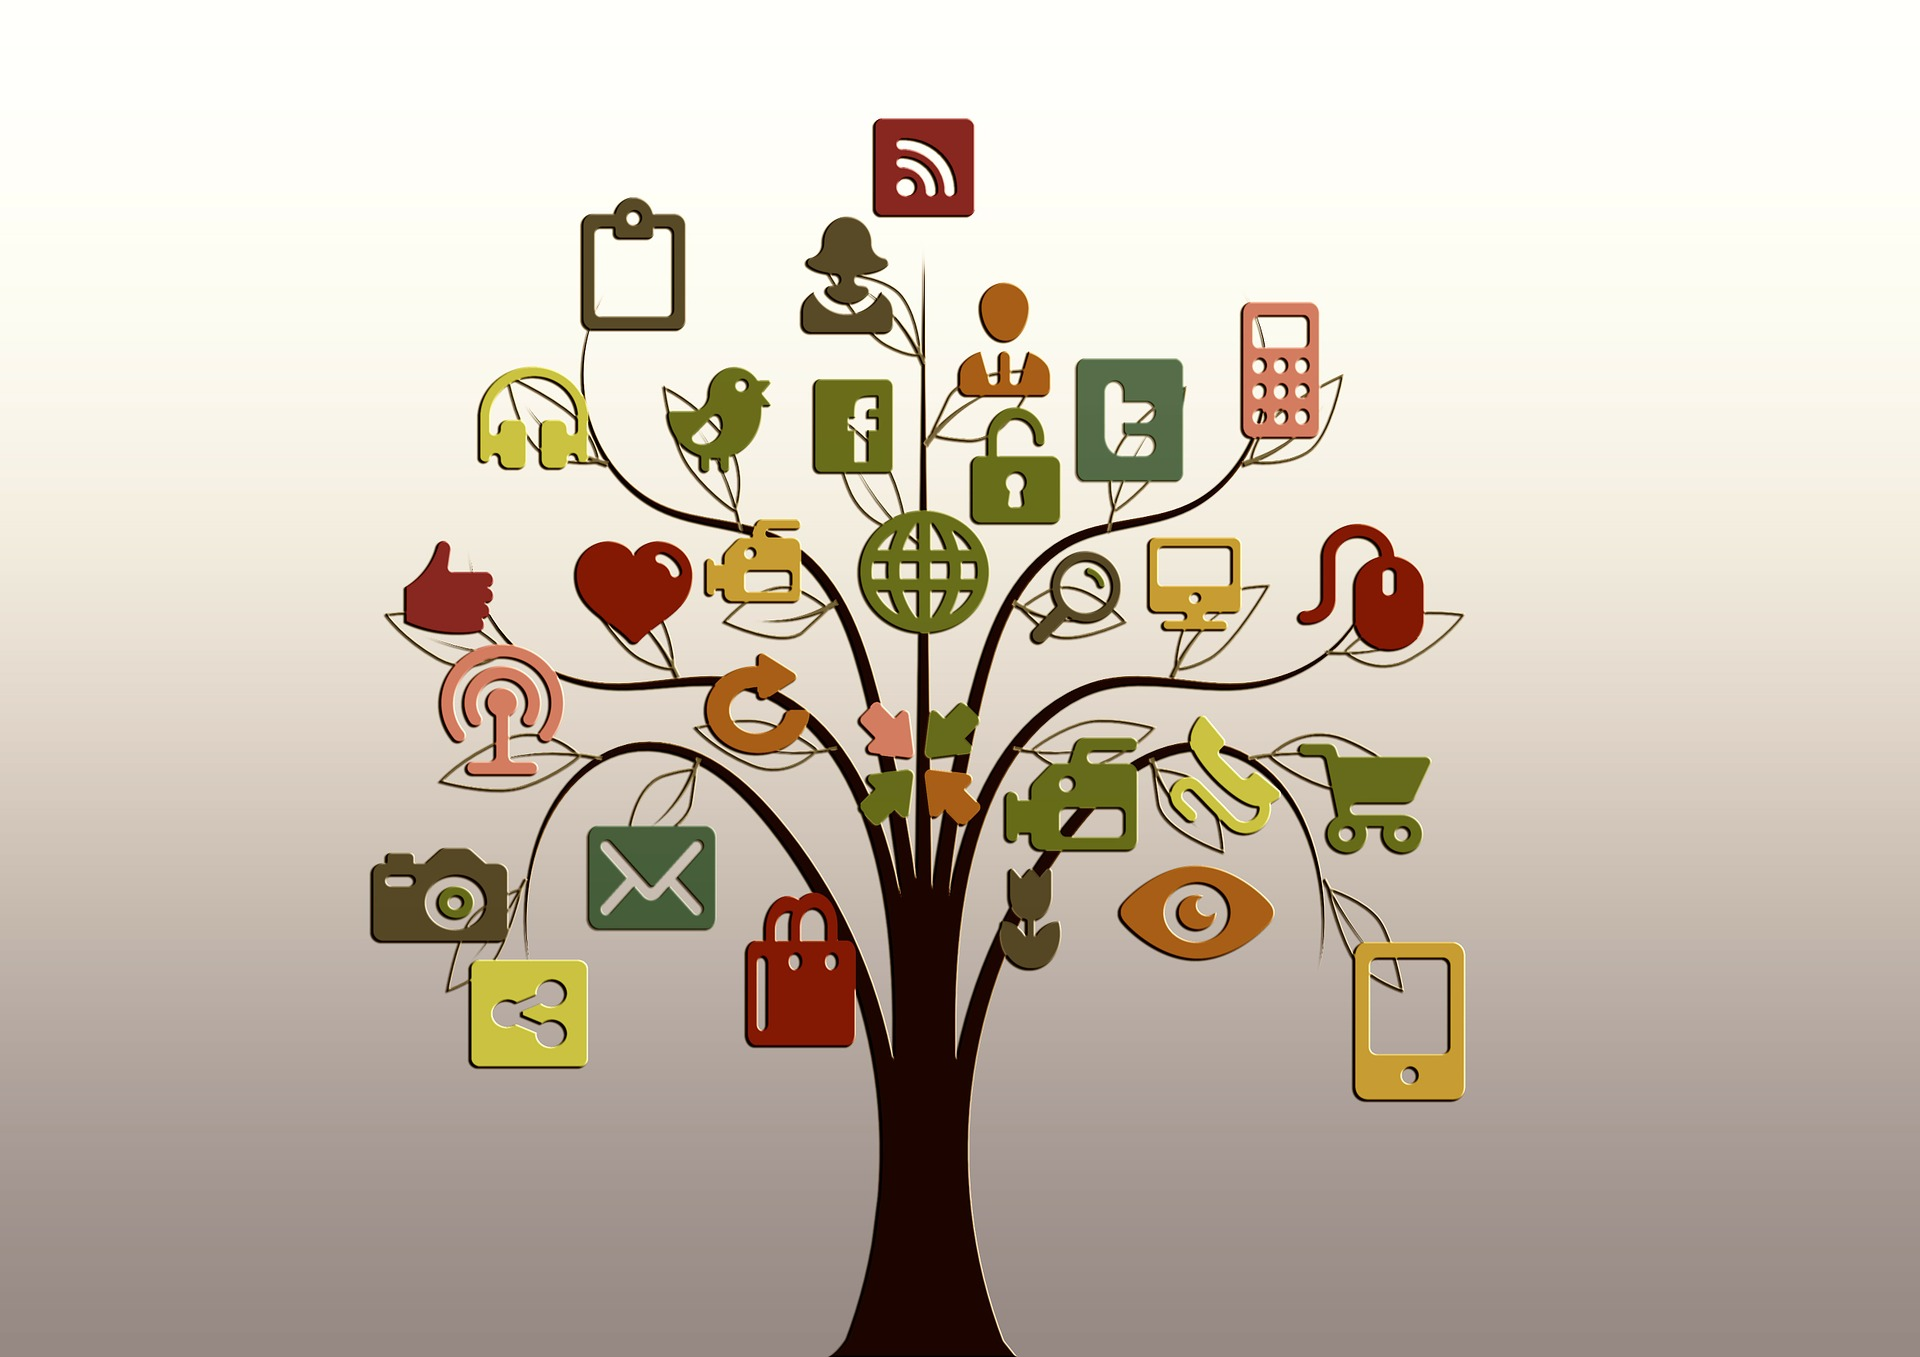 social media customer service concept image with social media logos hanging from a tree